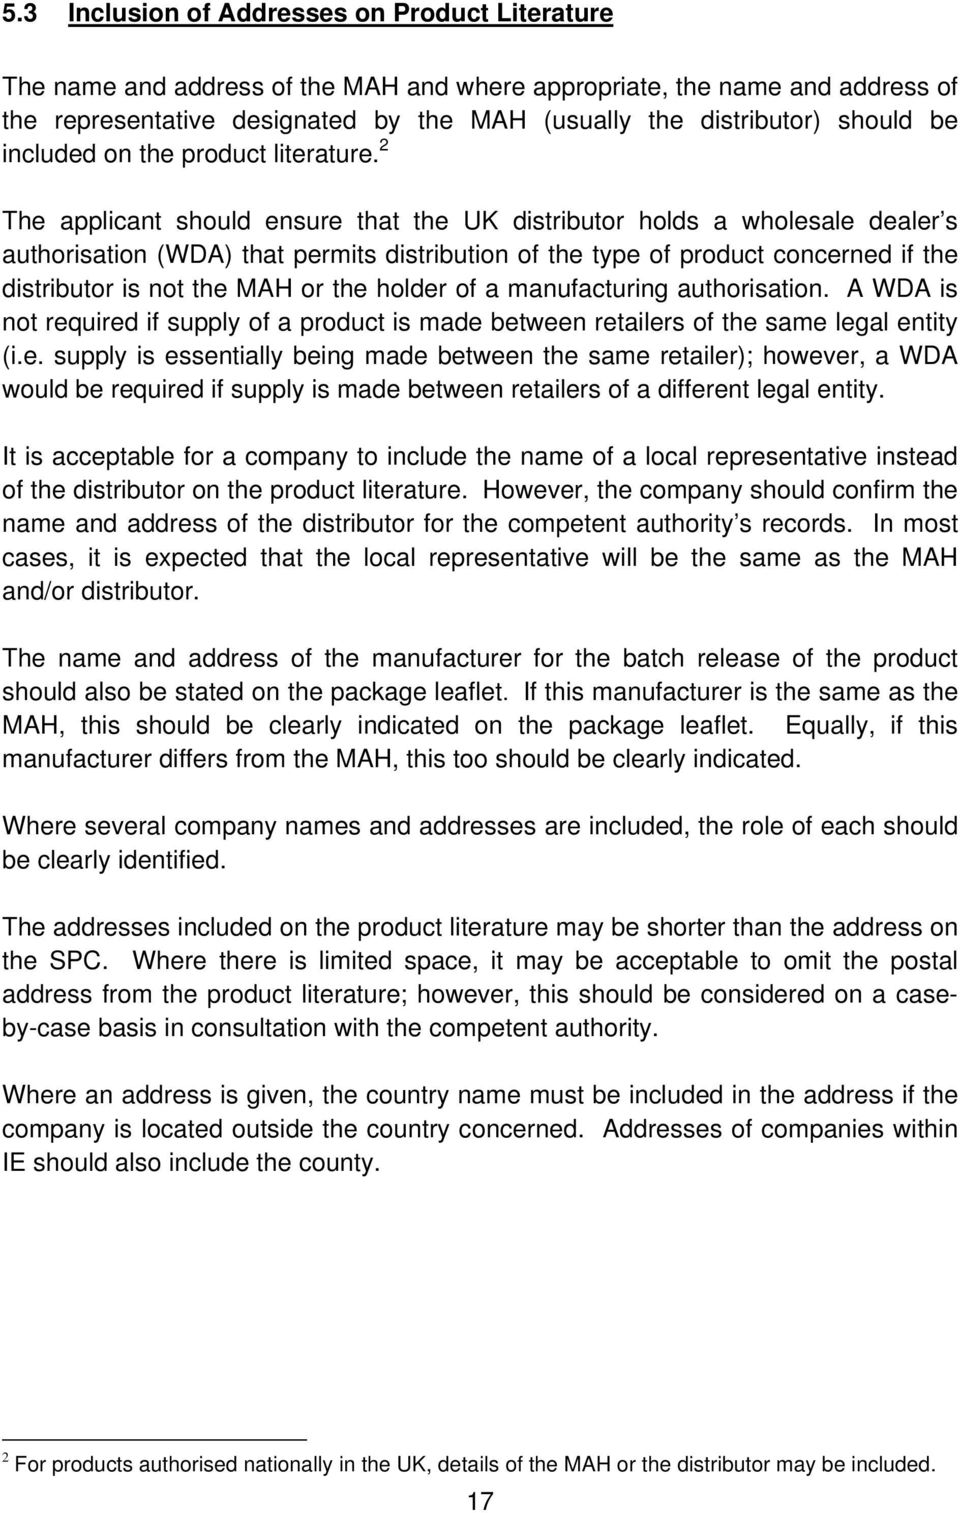 2 The applicant should ensure that the UK distributor holds a wholesale dealer s authorisation (WDA) that permits distribution of the type of product concerned if the distributor is not the MAH or